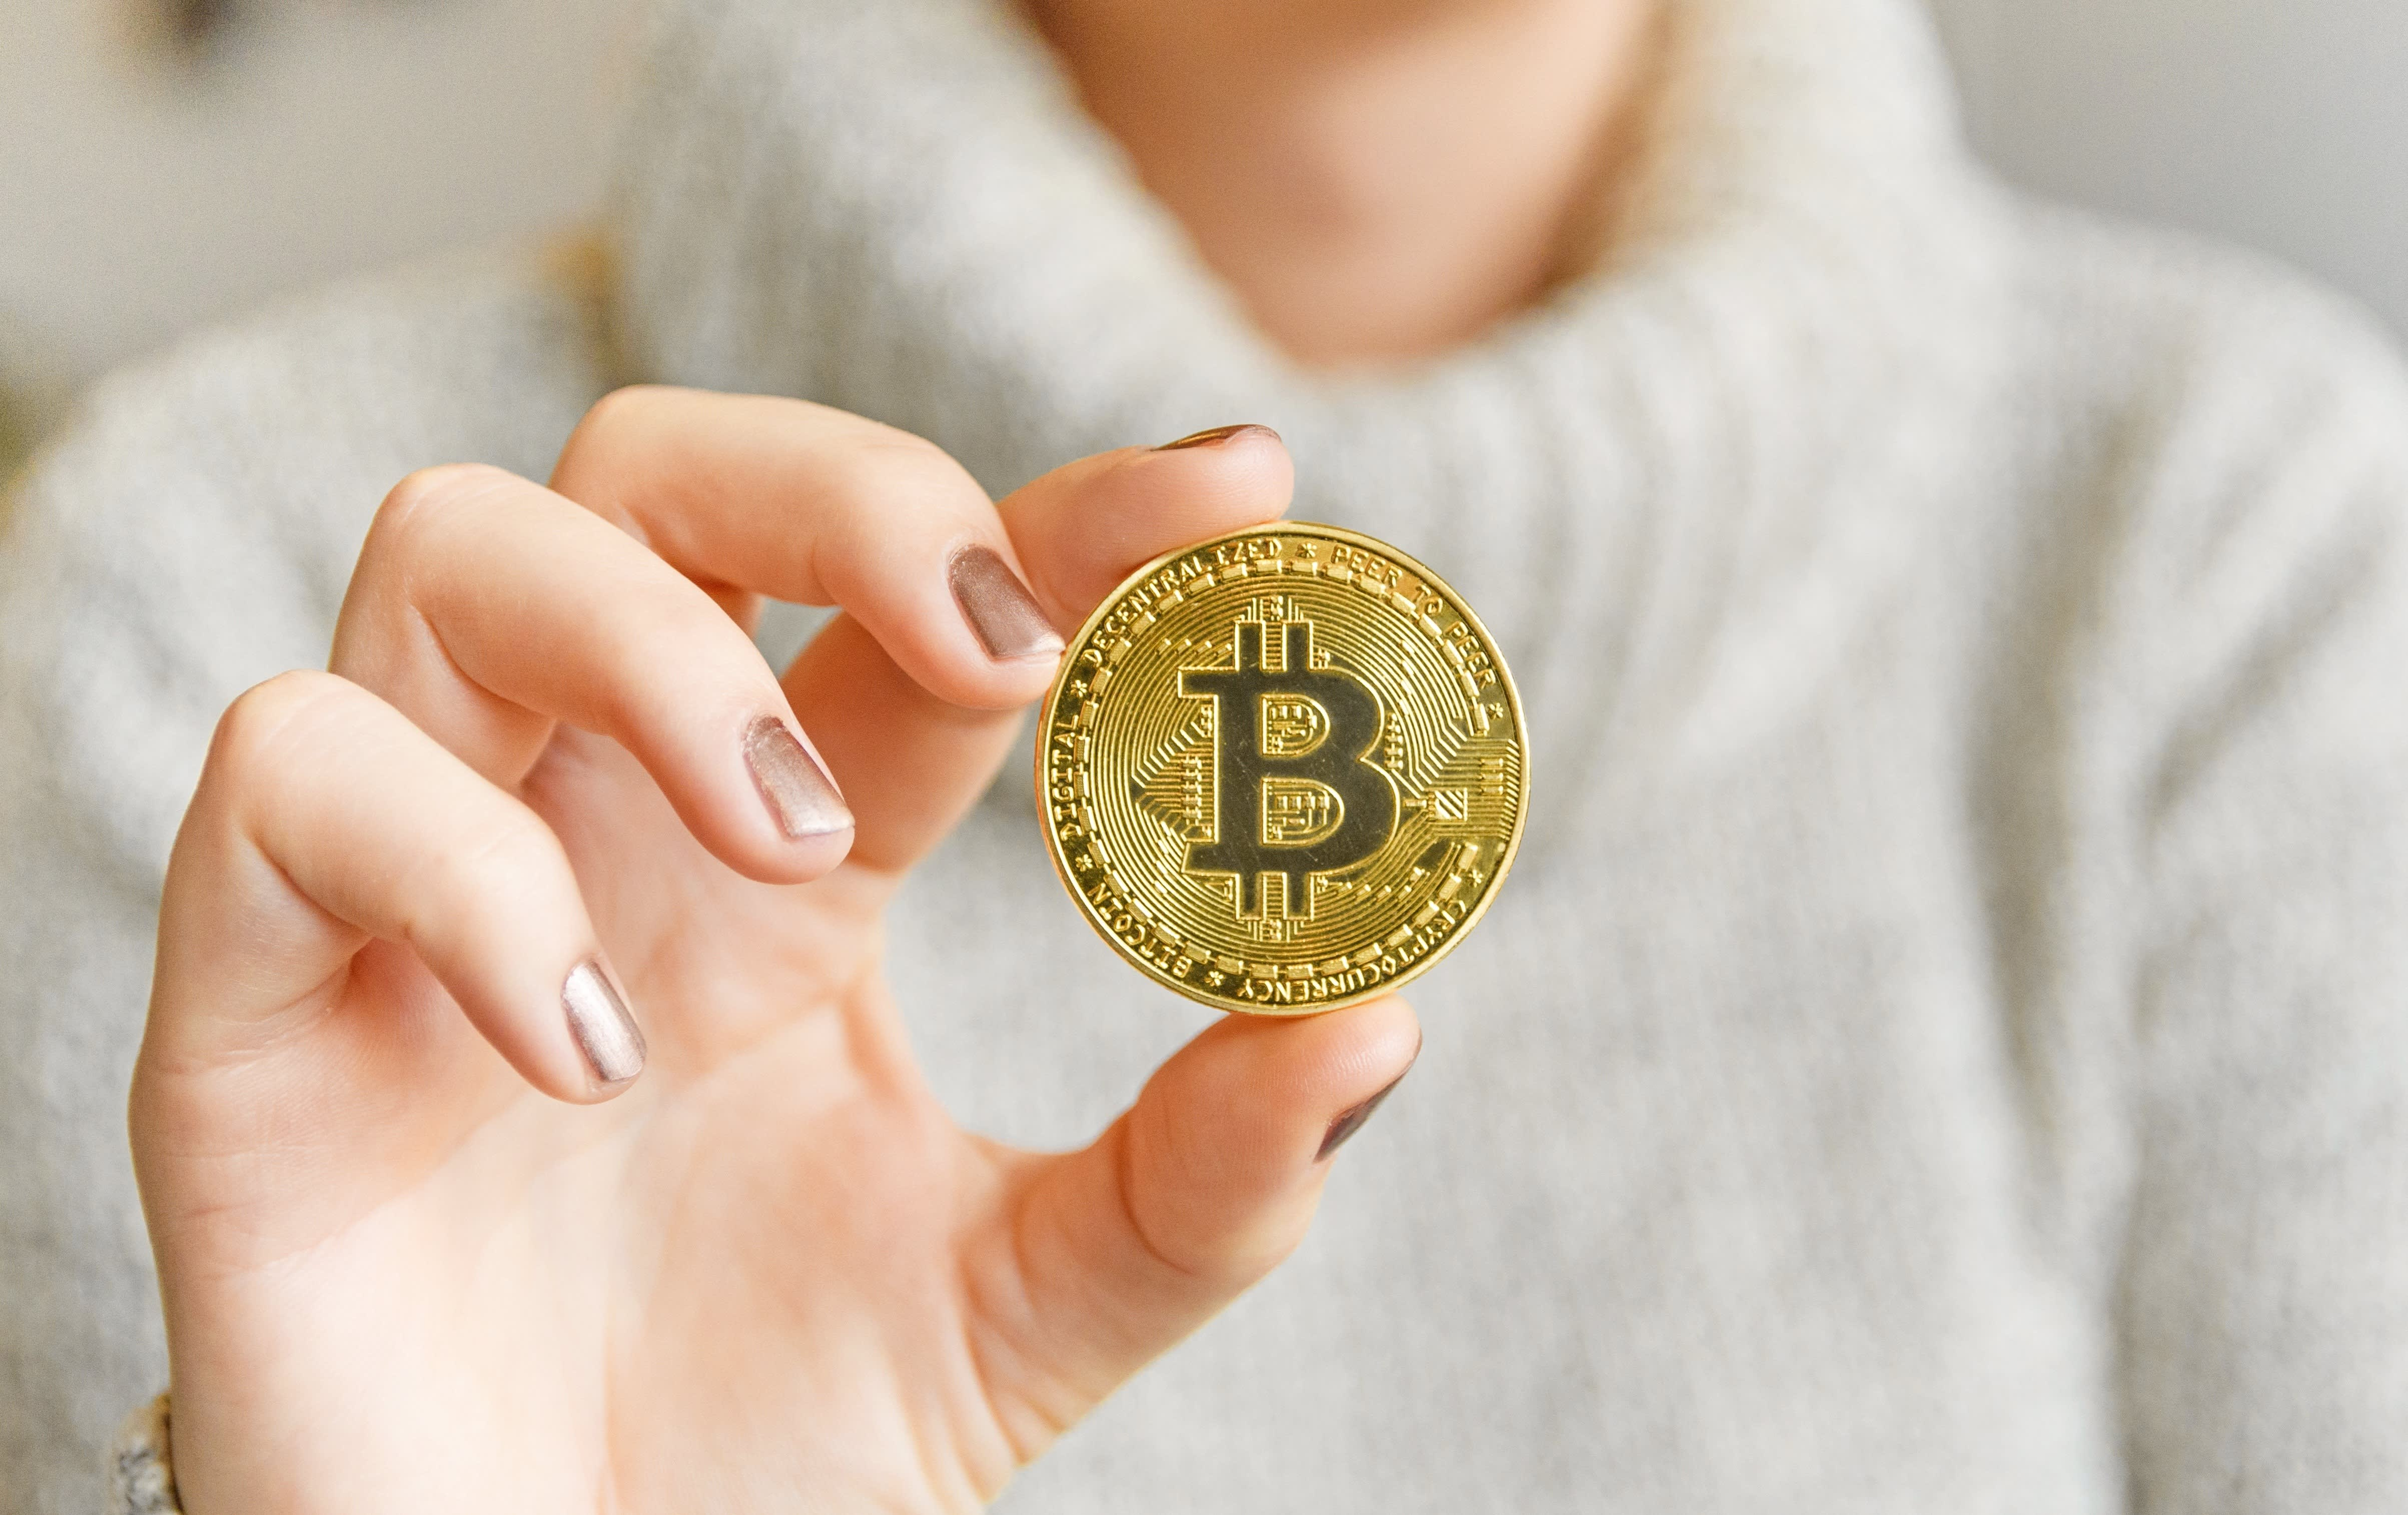 Access here alternative investment news about How Bitcoin Could Be The New Gamestop